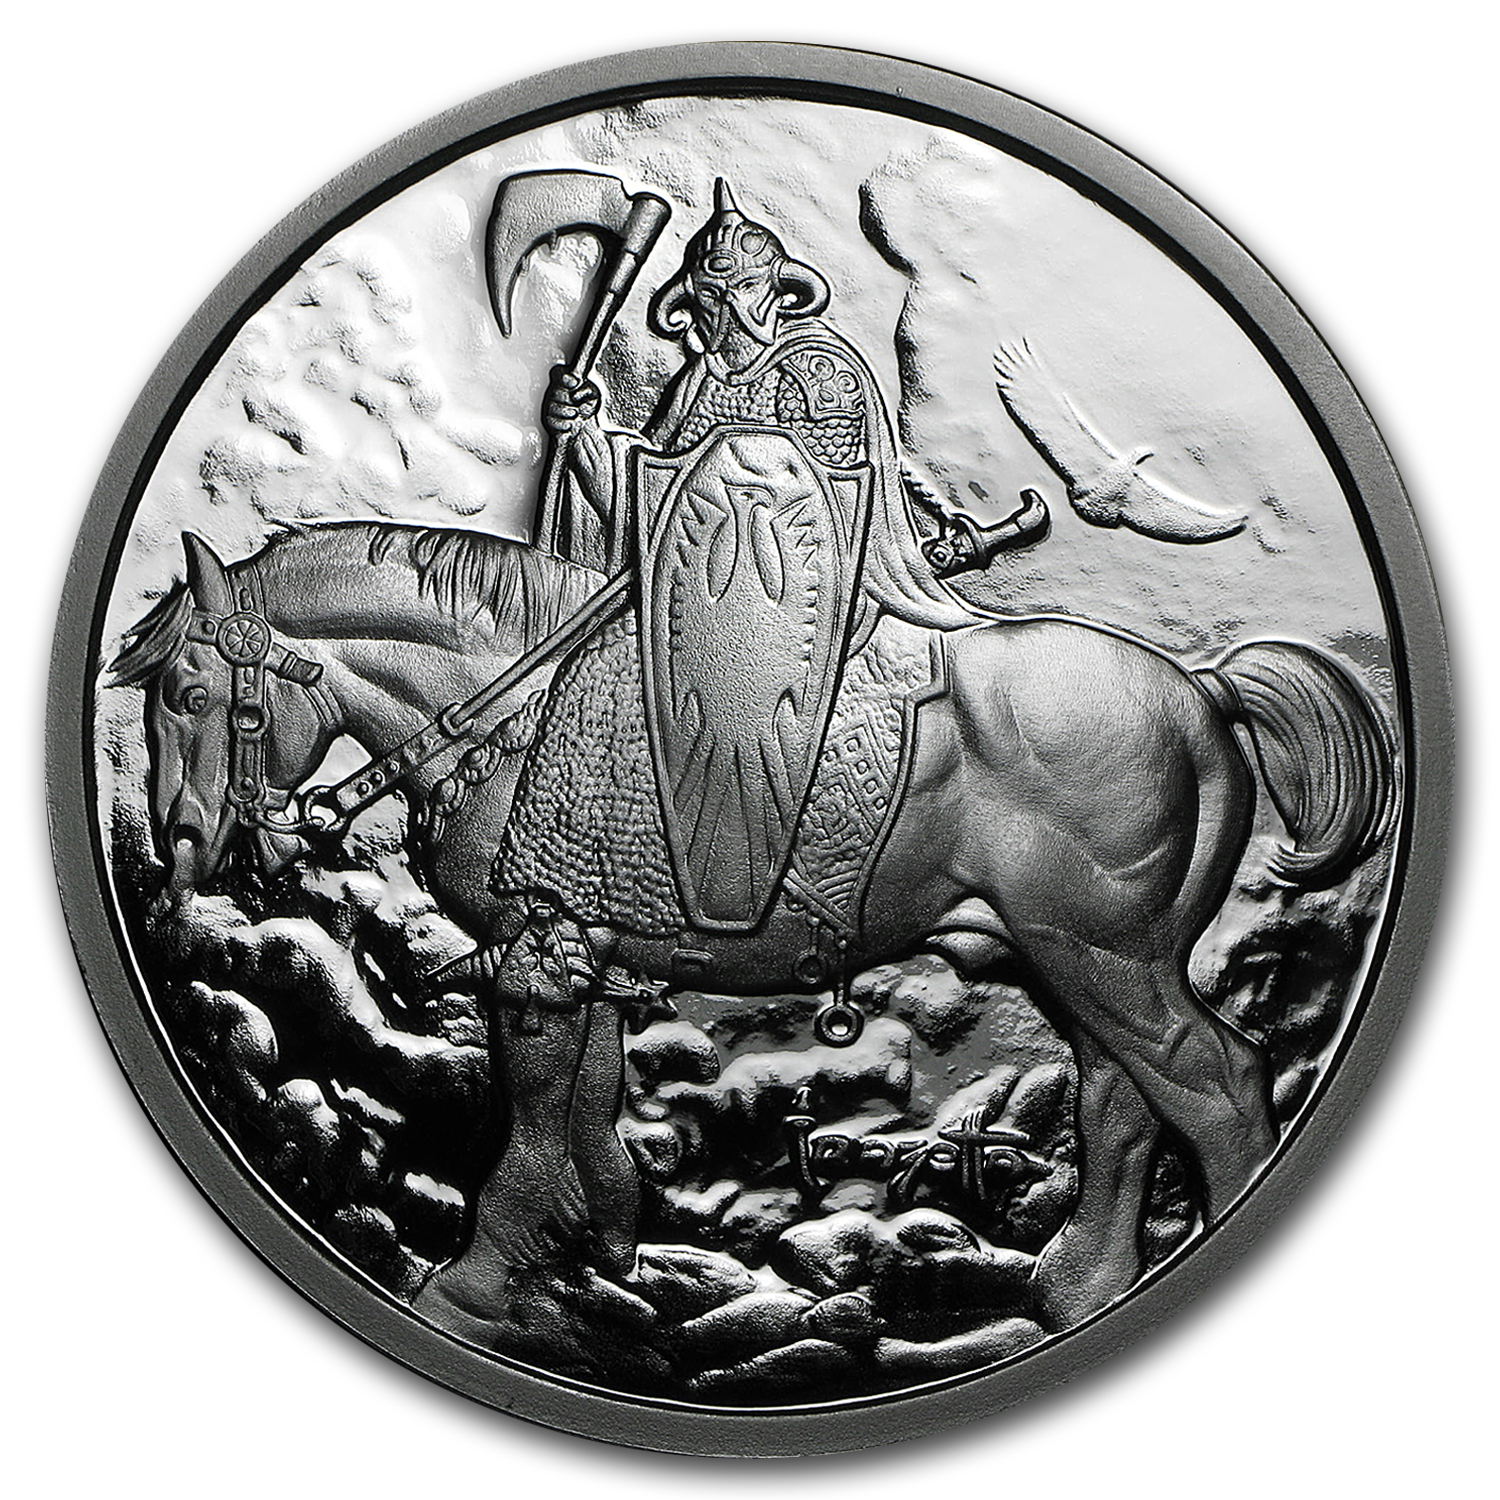 5 oz Silver Proof Round - Frank Frazetta (Death Dealer)